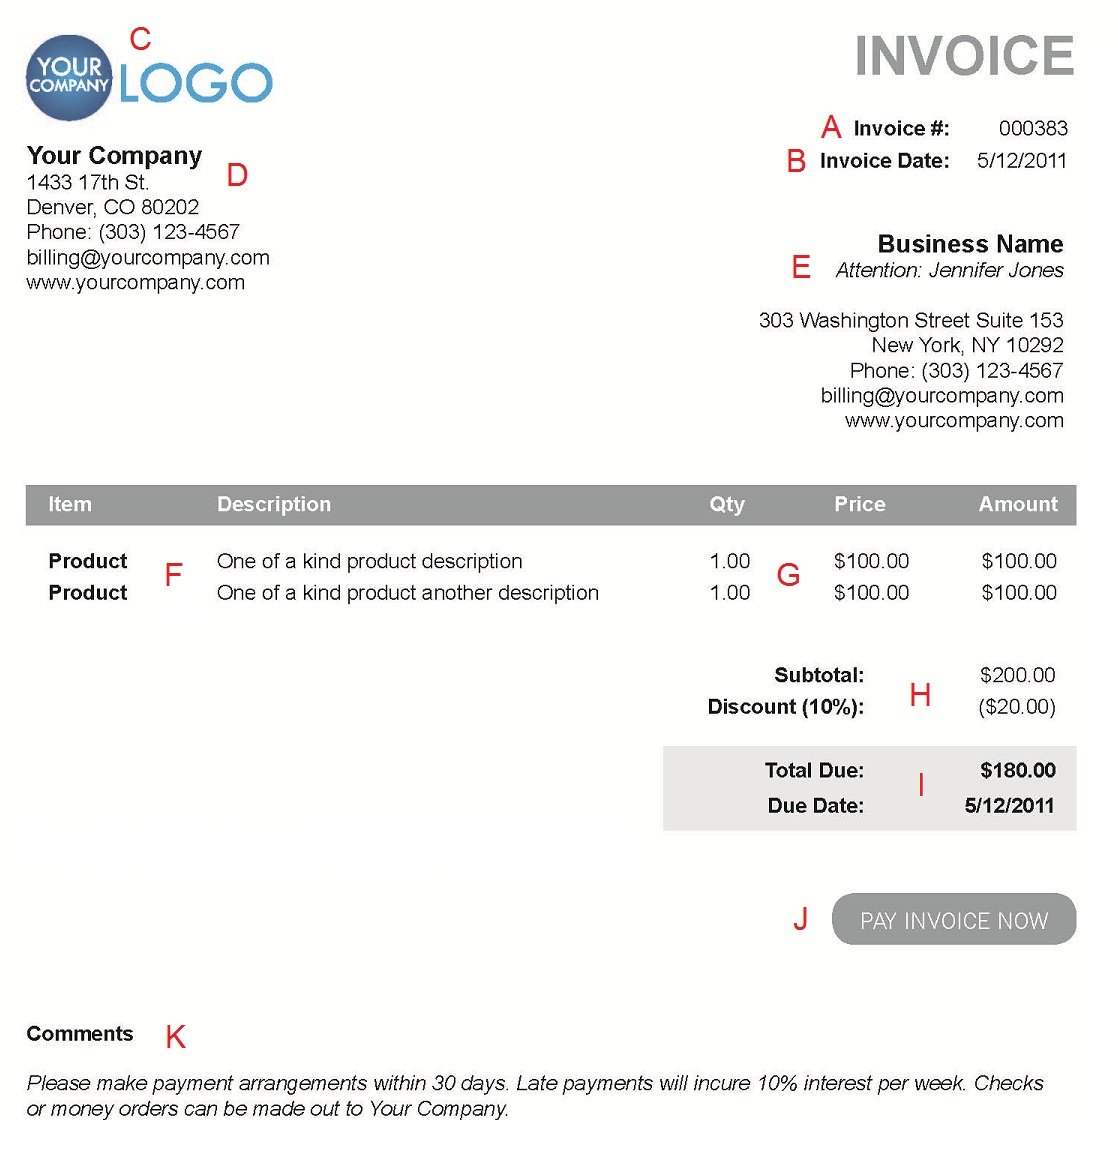 Weverducreus  Gorgeous The  Different Sections Of An Electronic Payment Invoice With Outstanding A  With Cool Invoicing Software Also Free Invoice Software In Addition Lps Invoice Management And Invoice Maker As Well As Fedex Commercial Invoice Additionally Invoice Template From Paysimplecom With Weverducreus  Outstanding The  Different Sections Of An Electronic Payment Invoice With Cool A  And Gorgeous Invoicing Software Also Free Invoice Software In Addition Lps Invoice Management From Paysimplecom